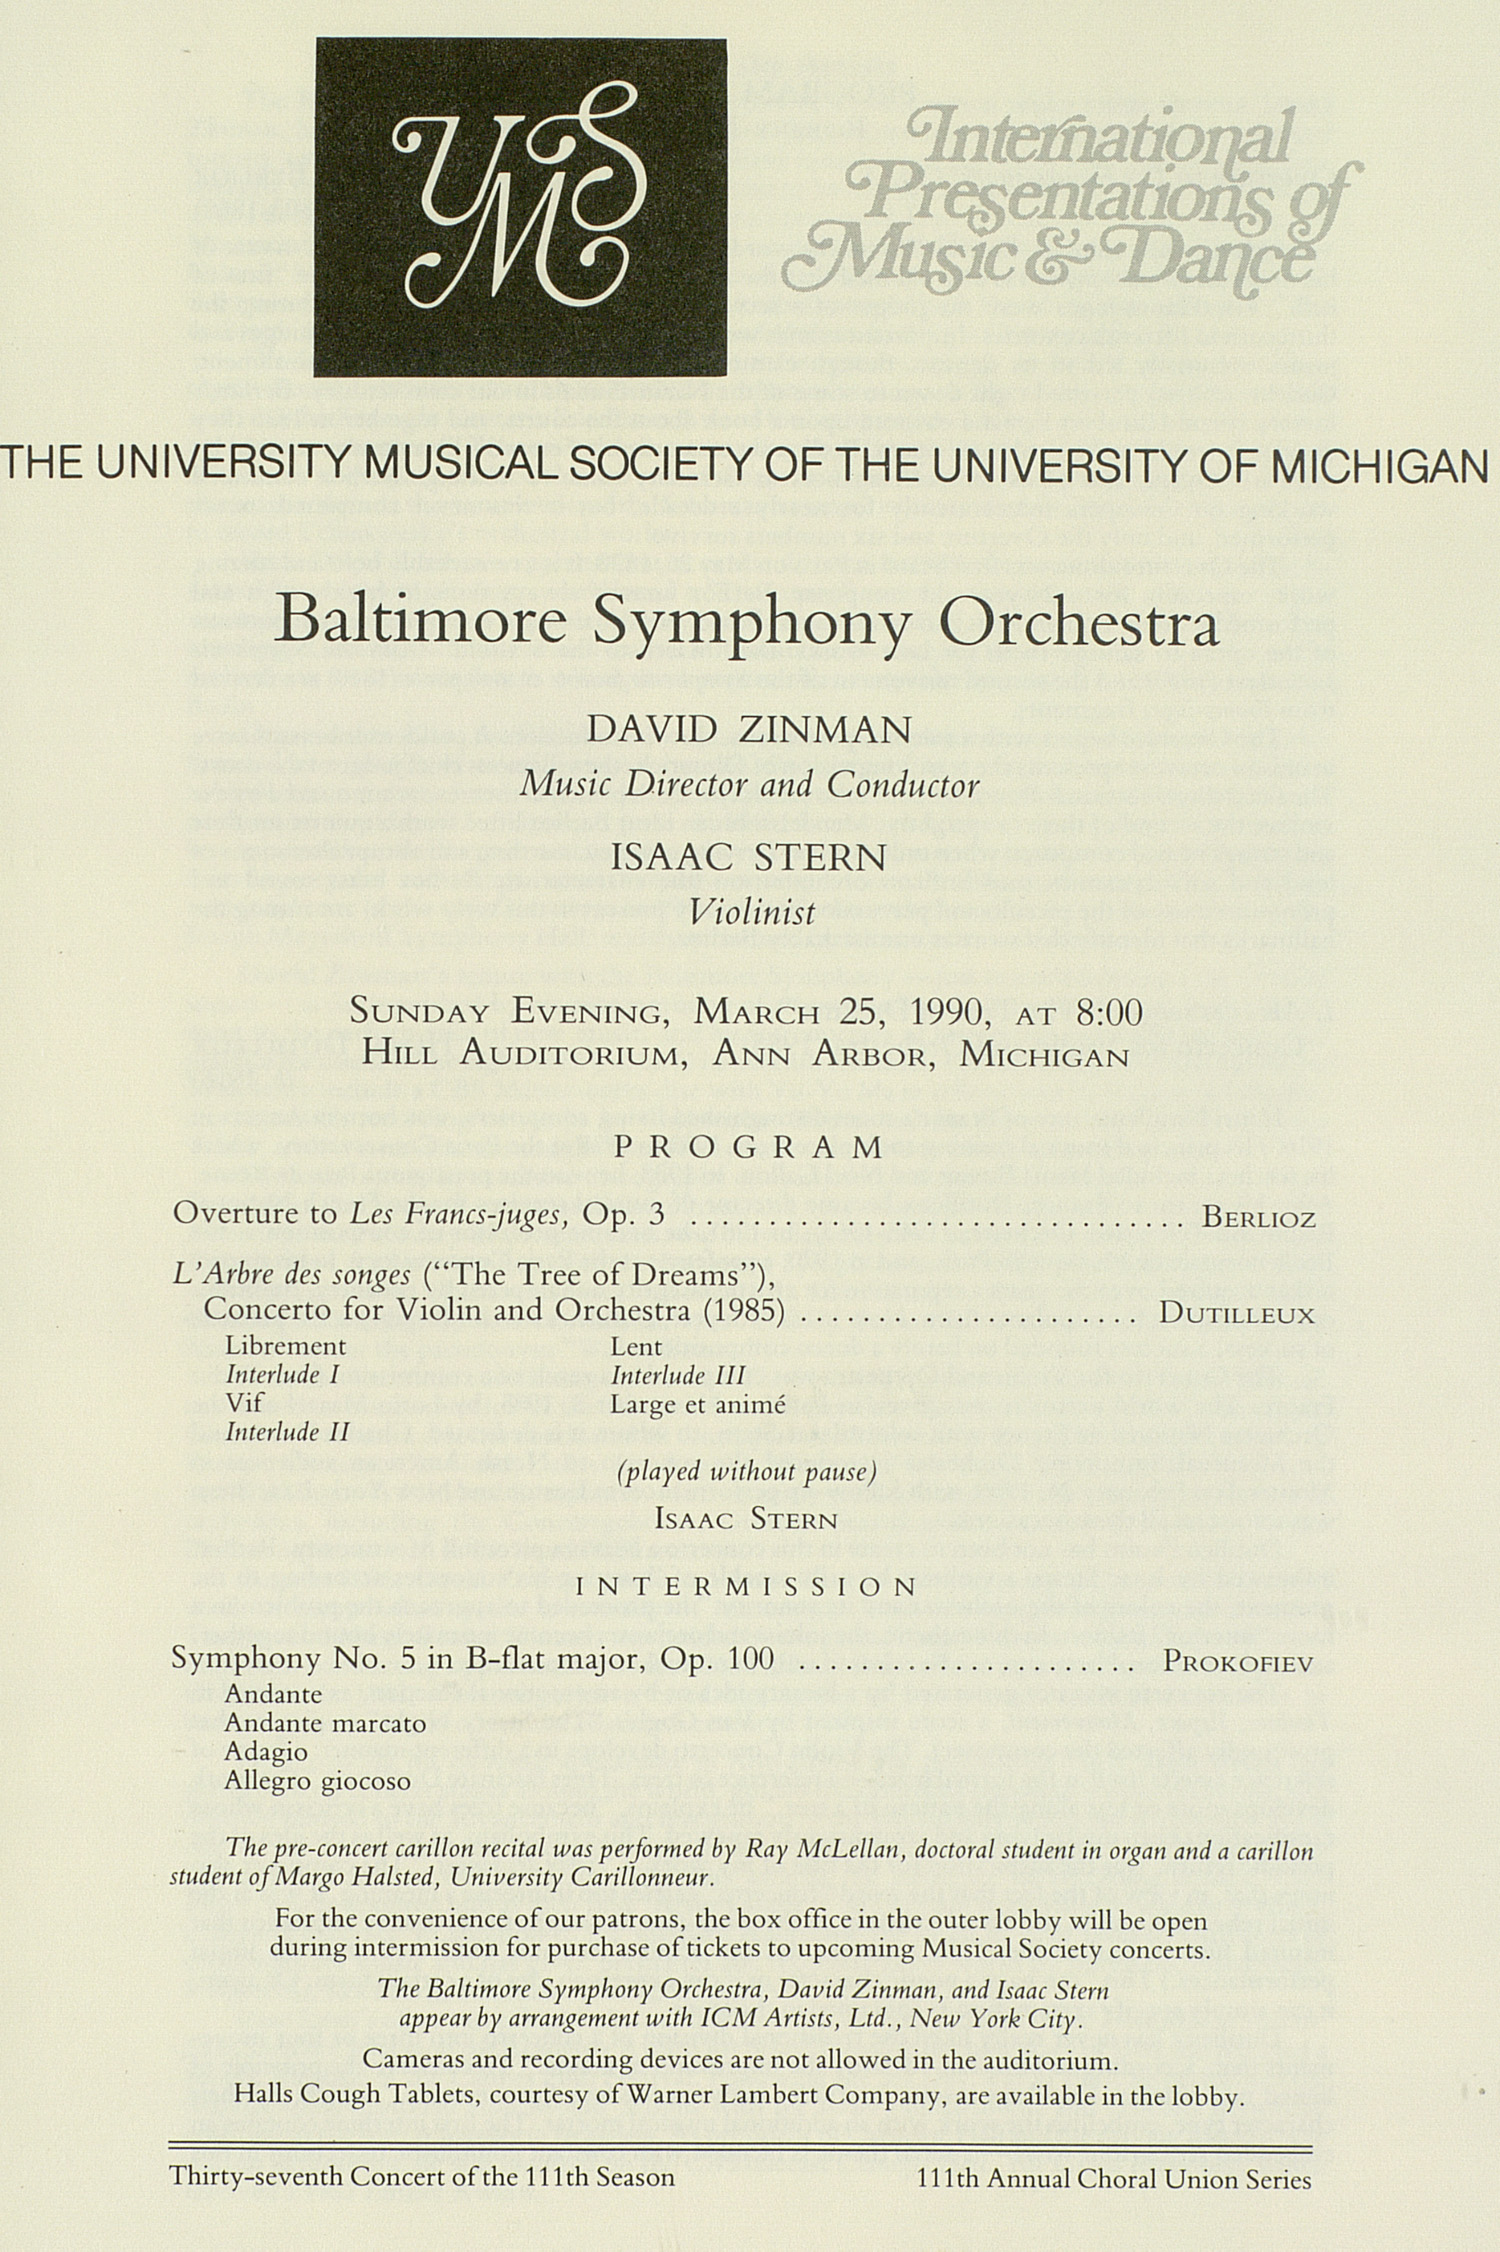 UMS Concert Program, March 25, 1990: International Presentations Of Music & Dance -- Baltimore Symphony Orchestra image